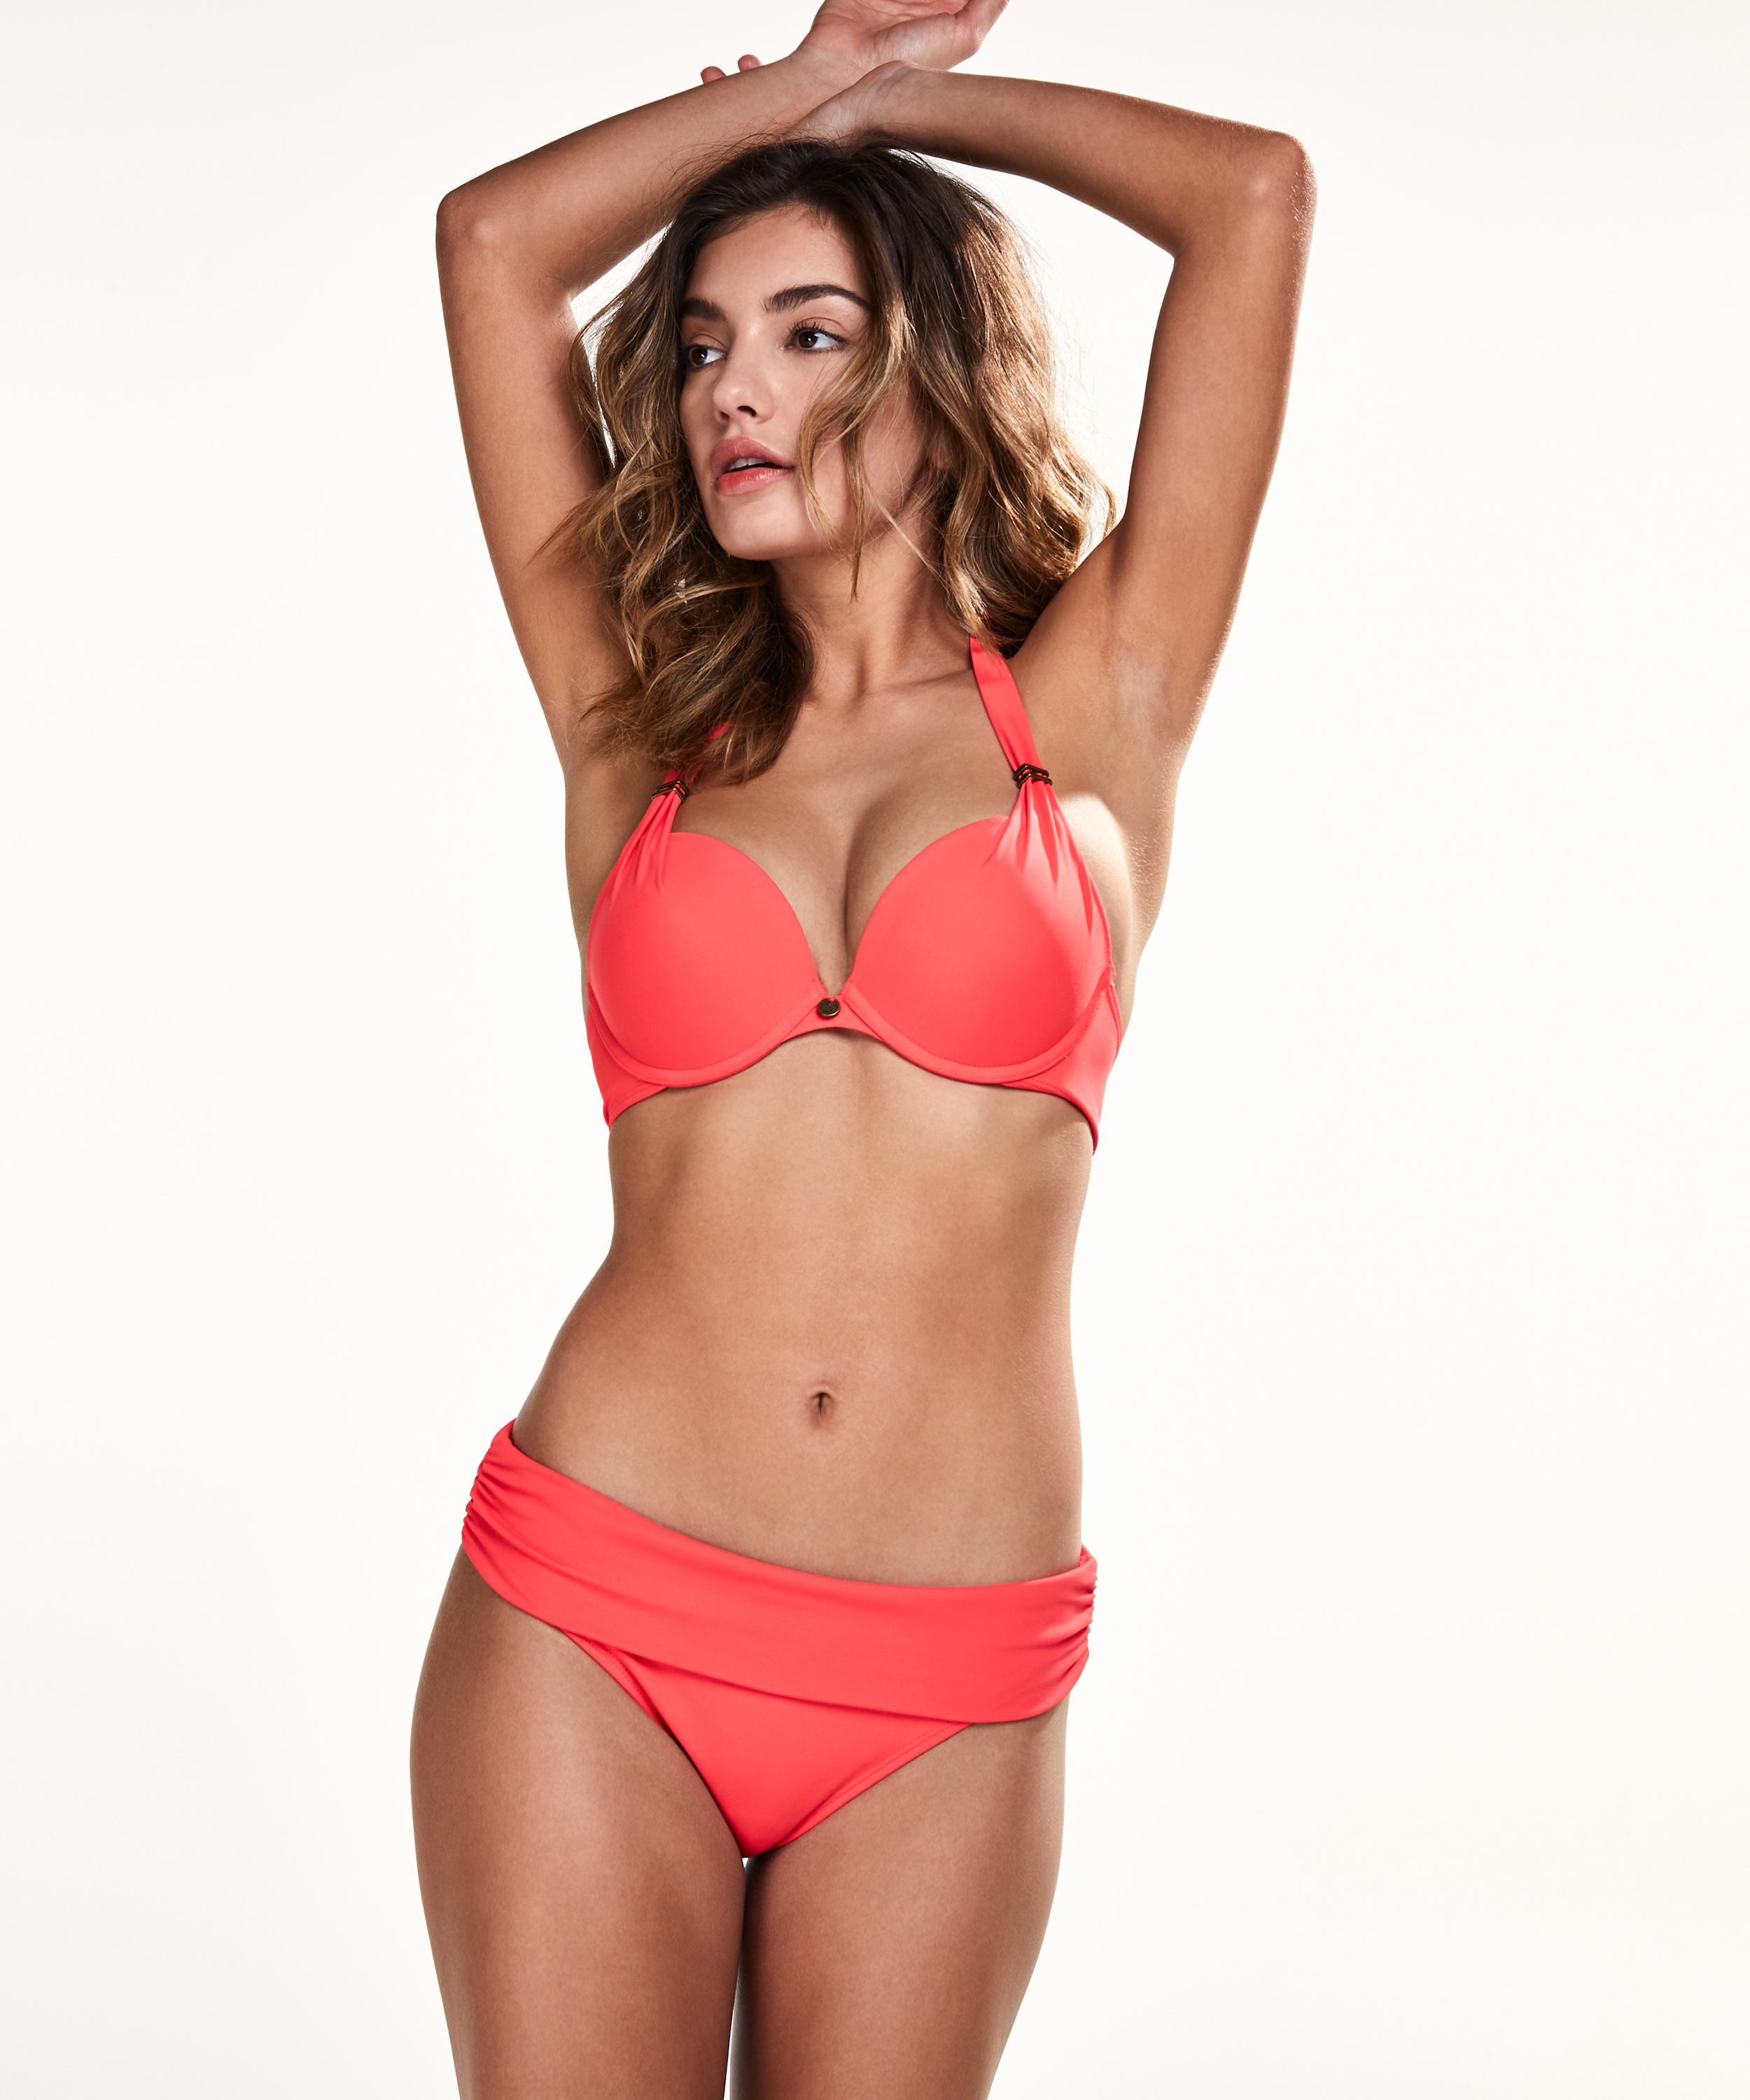 Vorgeformtes Push-up-Bikinitop Sunset Dream, Rot, main